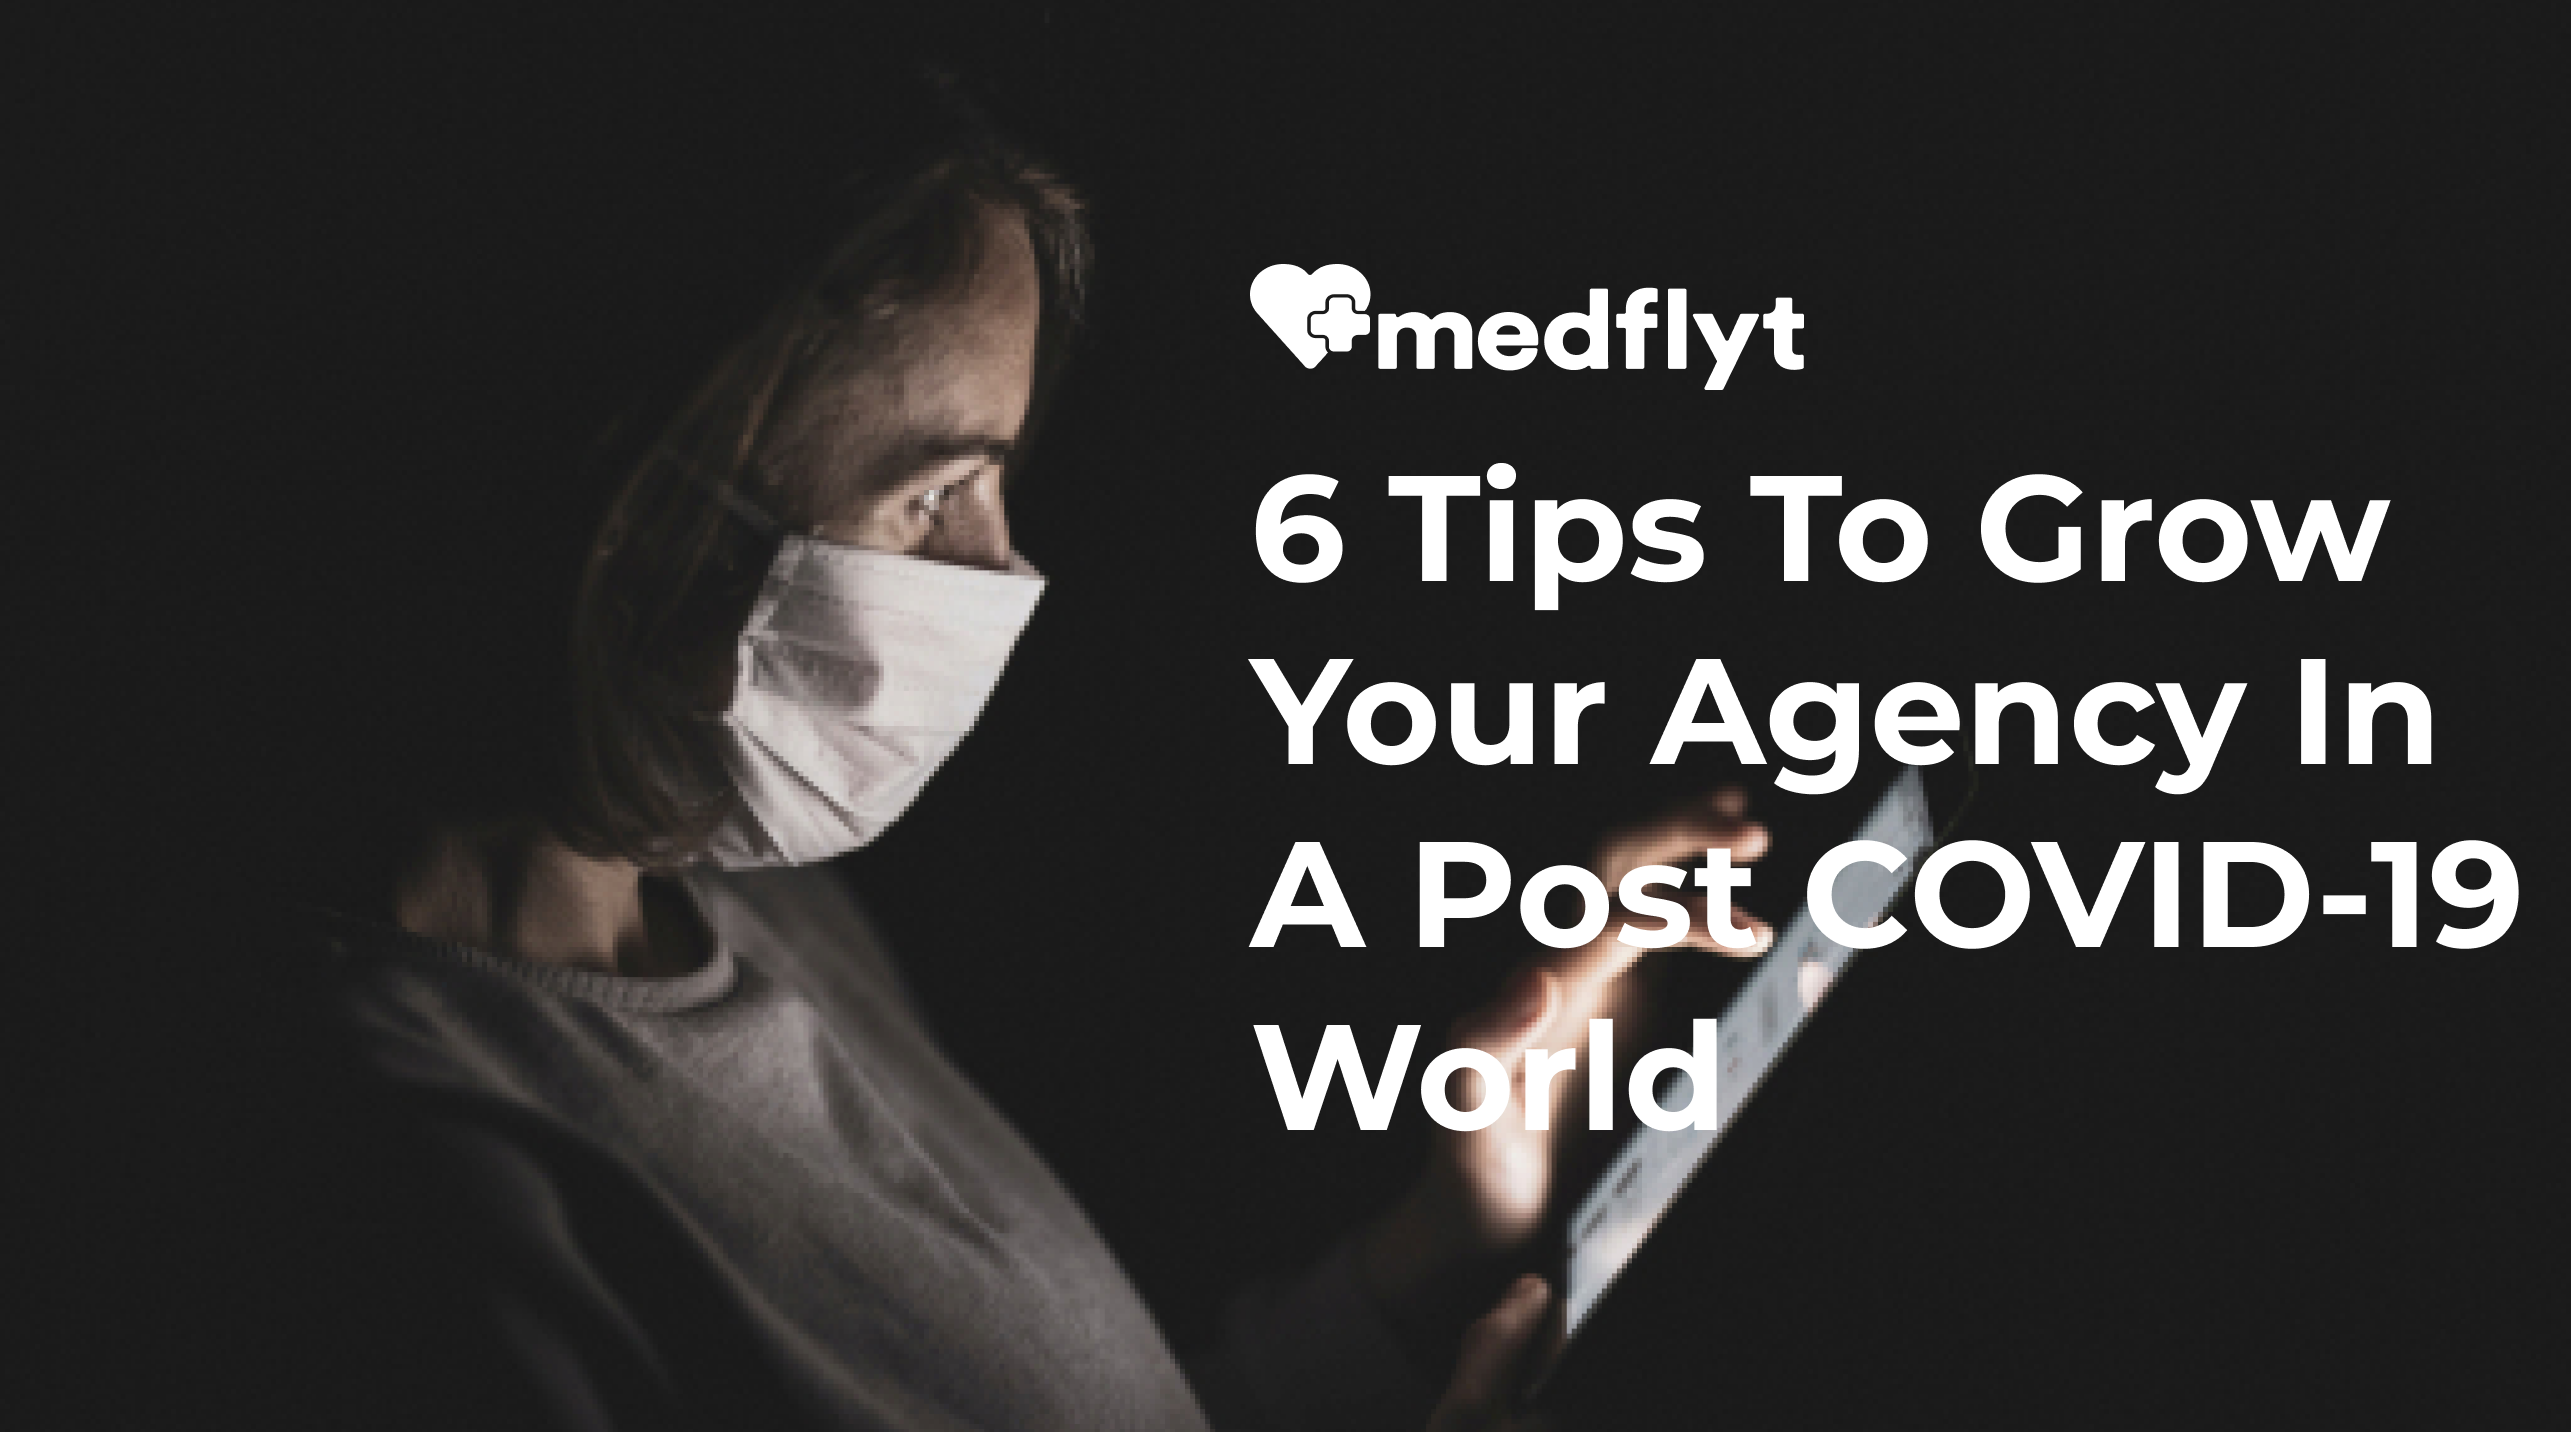 6 Tips to Grow Your Agency In A Post COVID-19 World